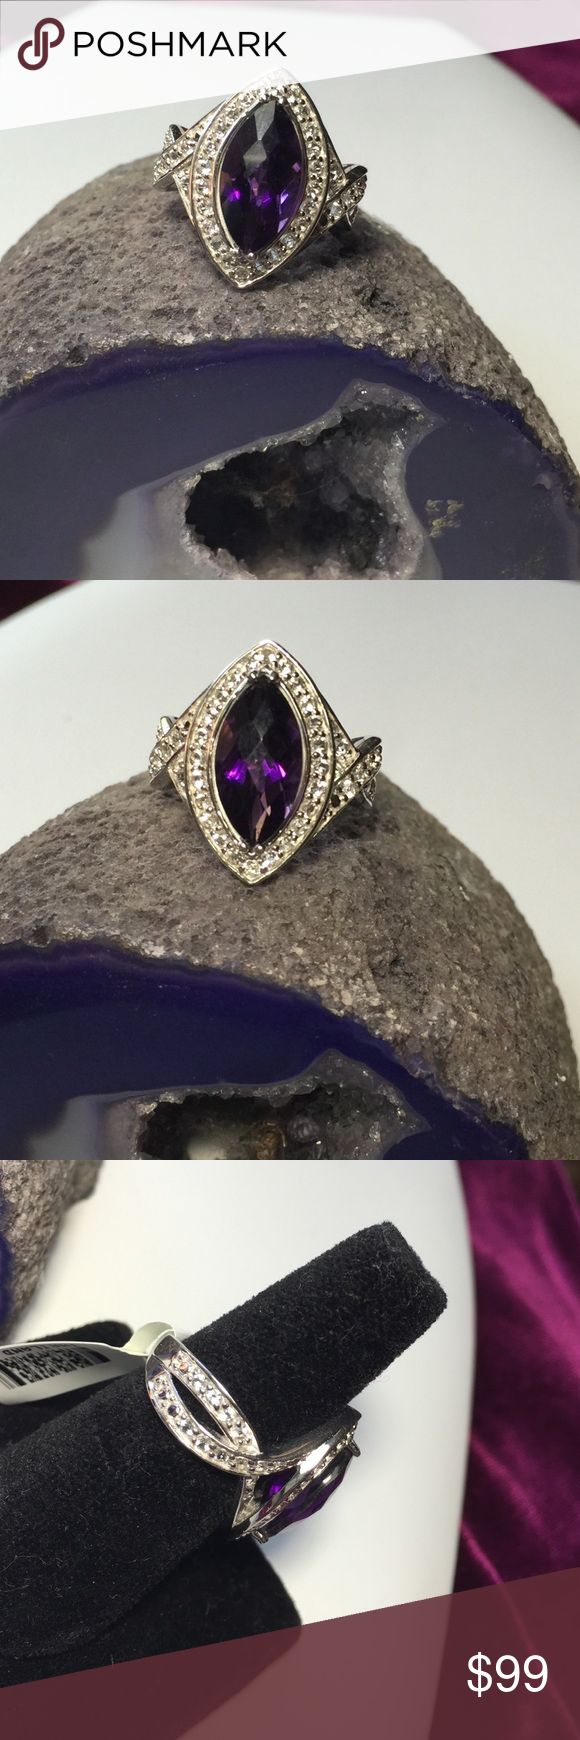 2.31ct Marquis Checkerboard African Amethyst💜💎 Stunning.  2.31CT Marquis Intense Labor Designer Checkerboard Cut African Amethyst and  84ctw Round Bright White Topaz. Simply Put Majestic.  These Natural Gemstones; Unheated. From the Earth to the Lapidary..💎 💜💎💜Set in 925 SS African Treasures Jewelry Rings